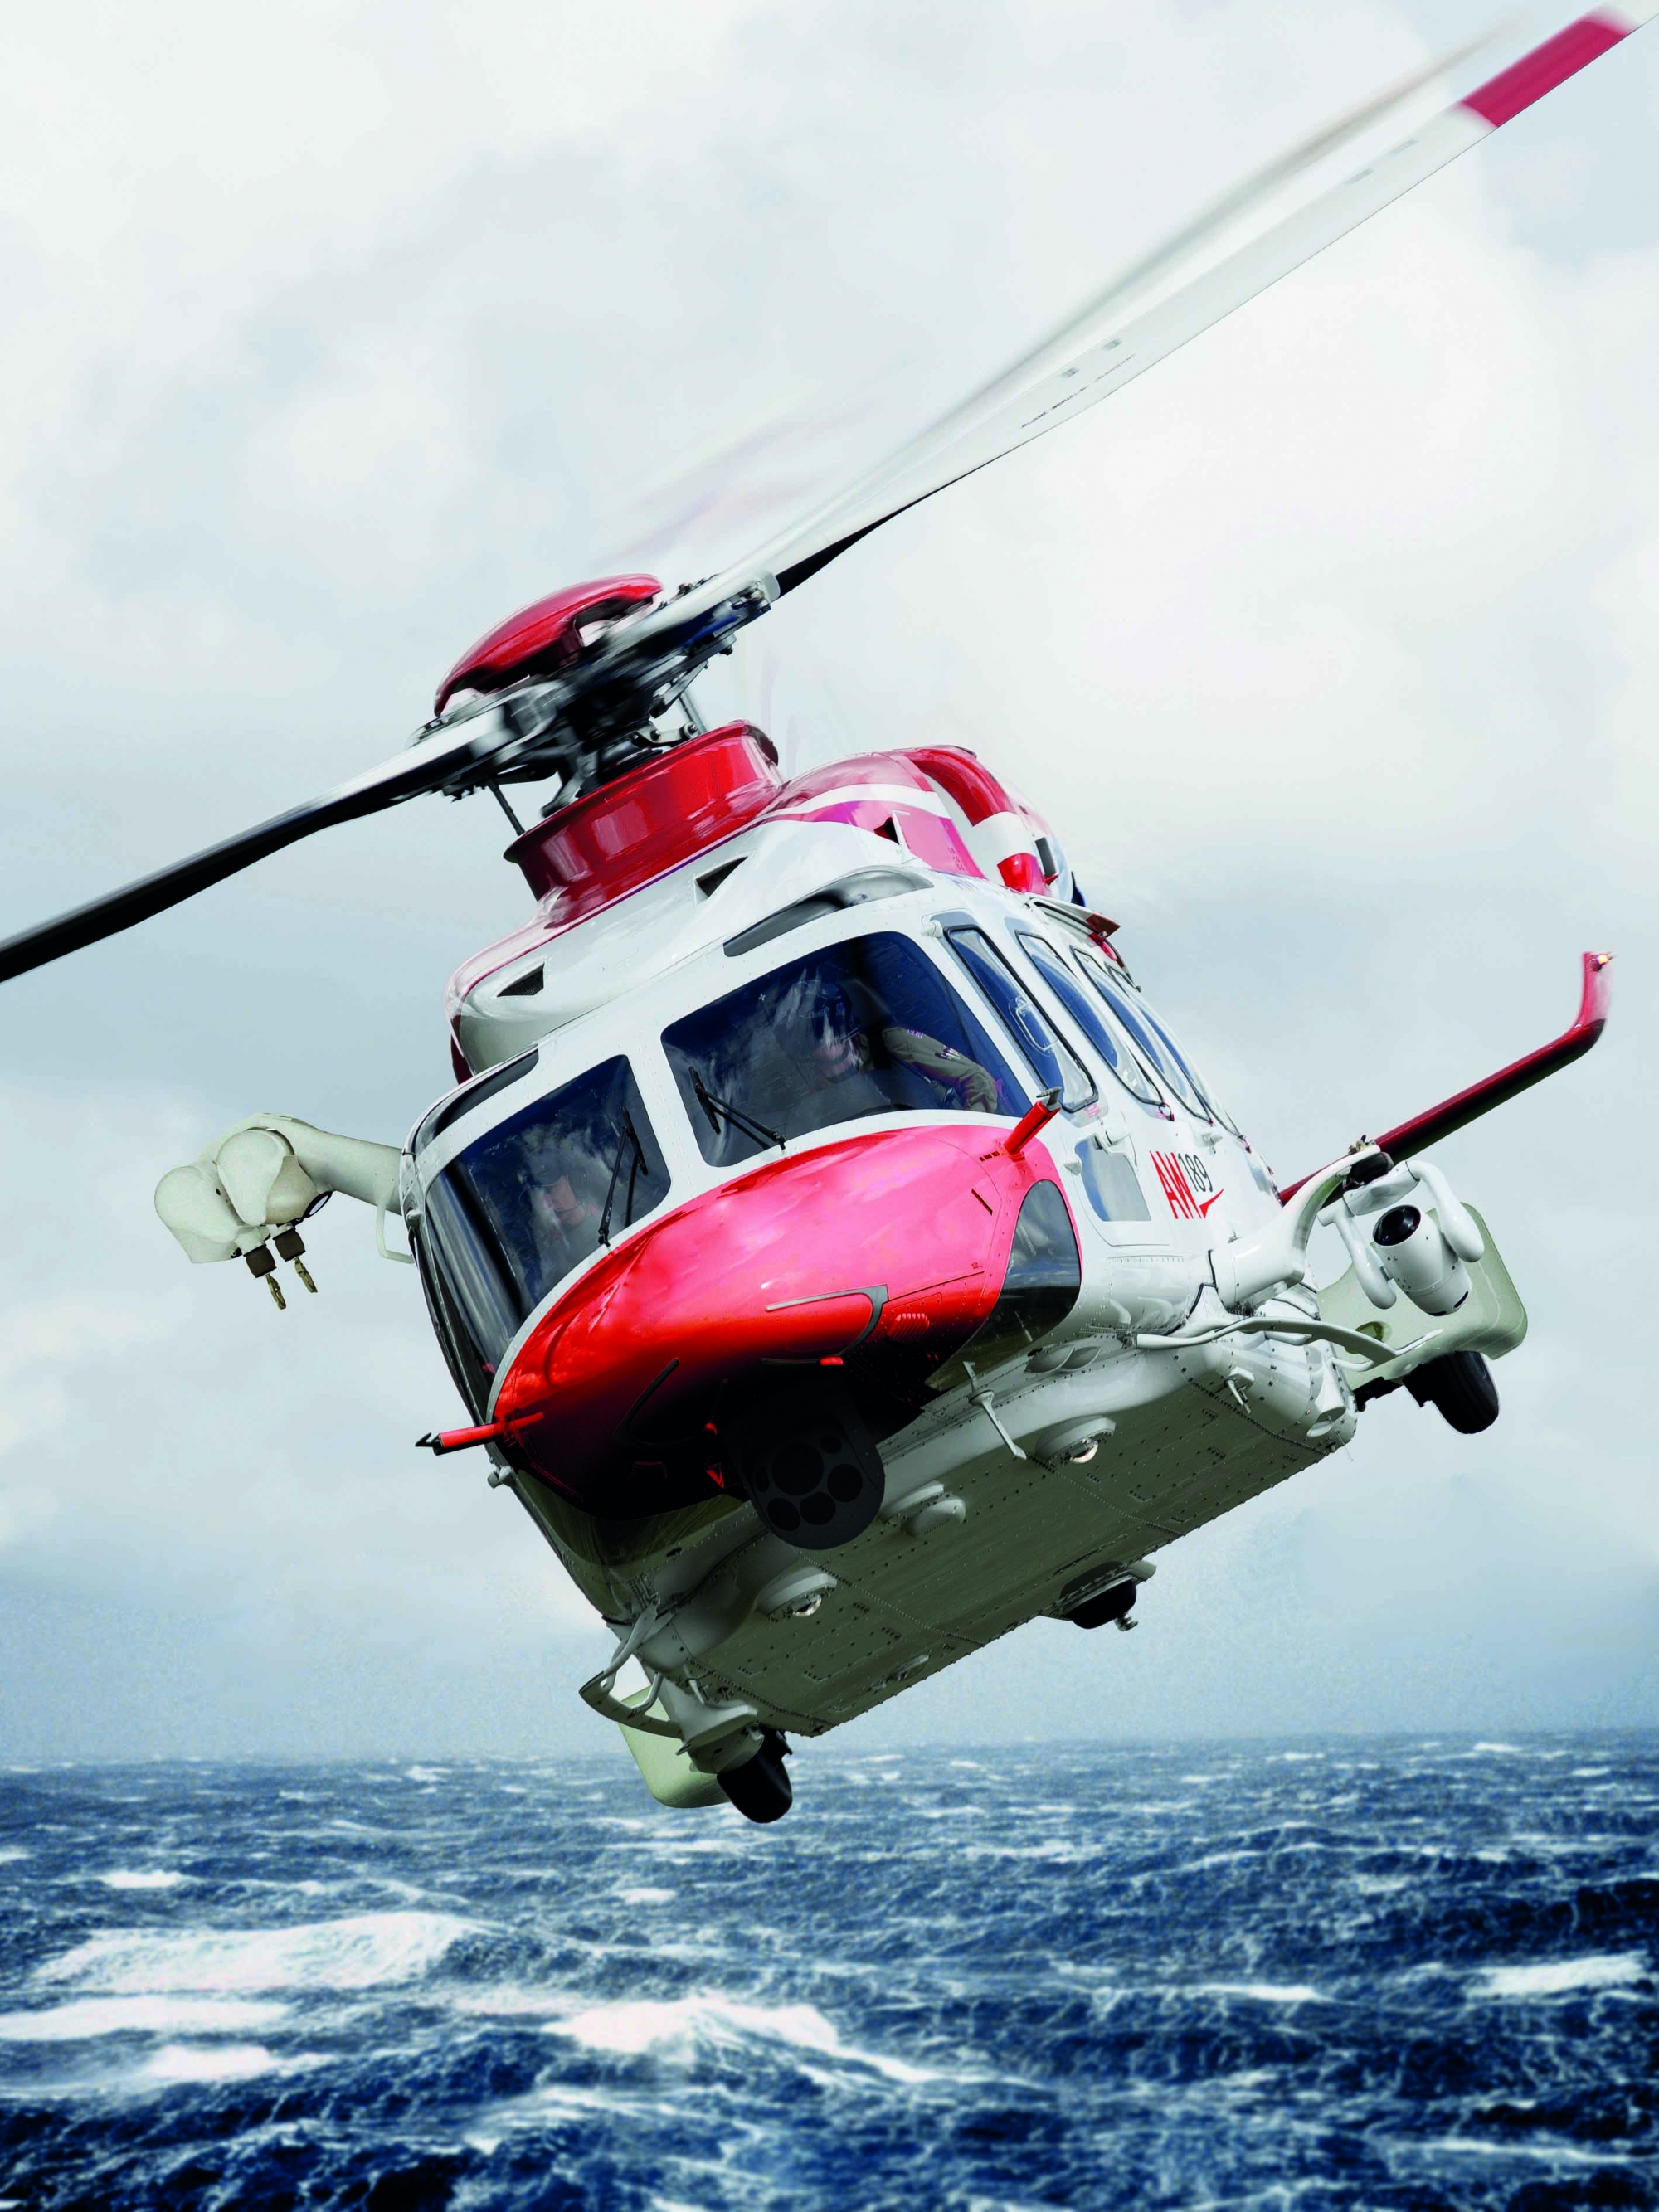 AgustaWestland Cool On Development Of 105t Helicopter